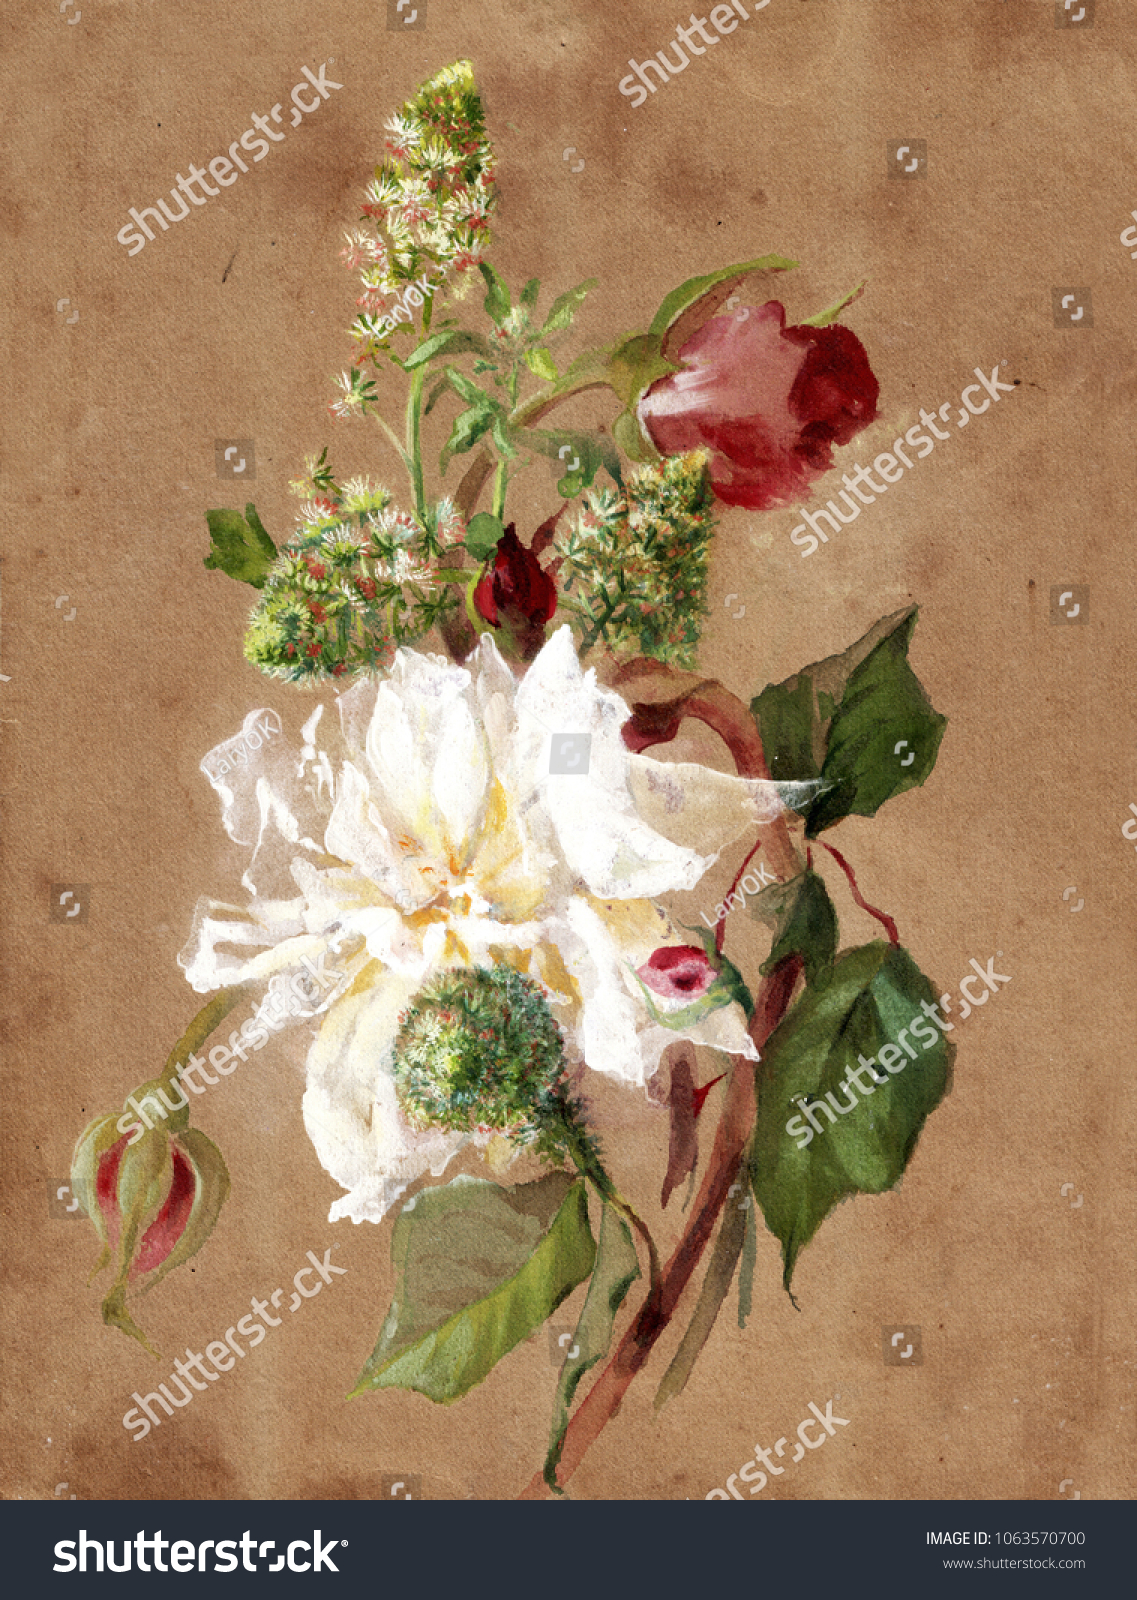 Drawing vintage bouquet flowers stock illustration 1063570700 drawing a vintage bouquet of flowers izmirmasajfo